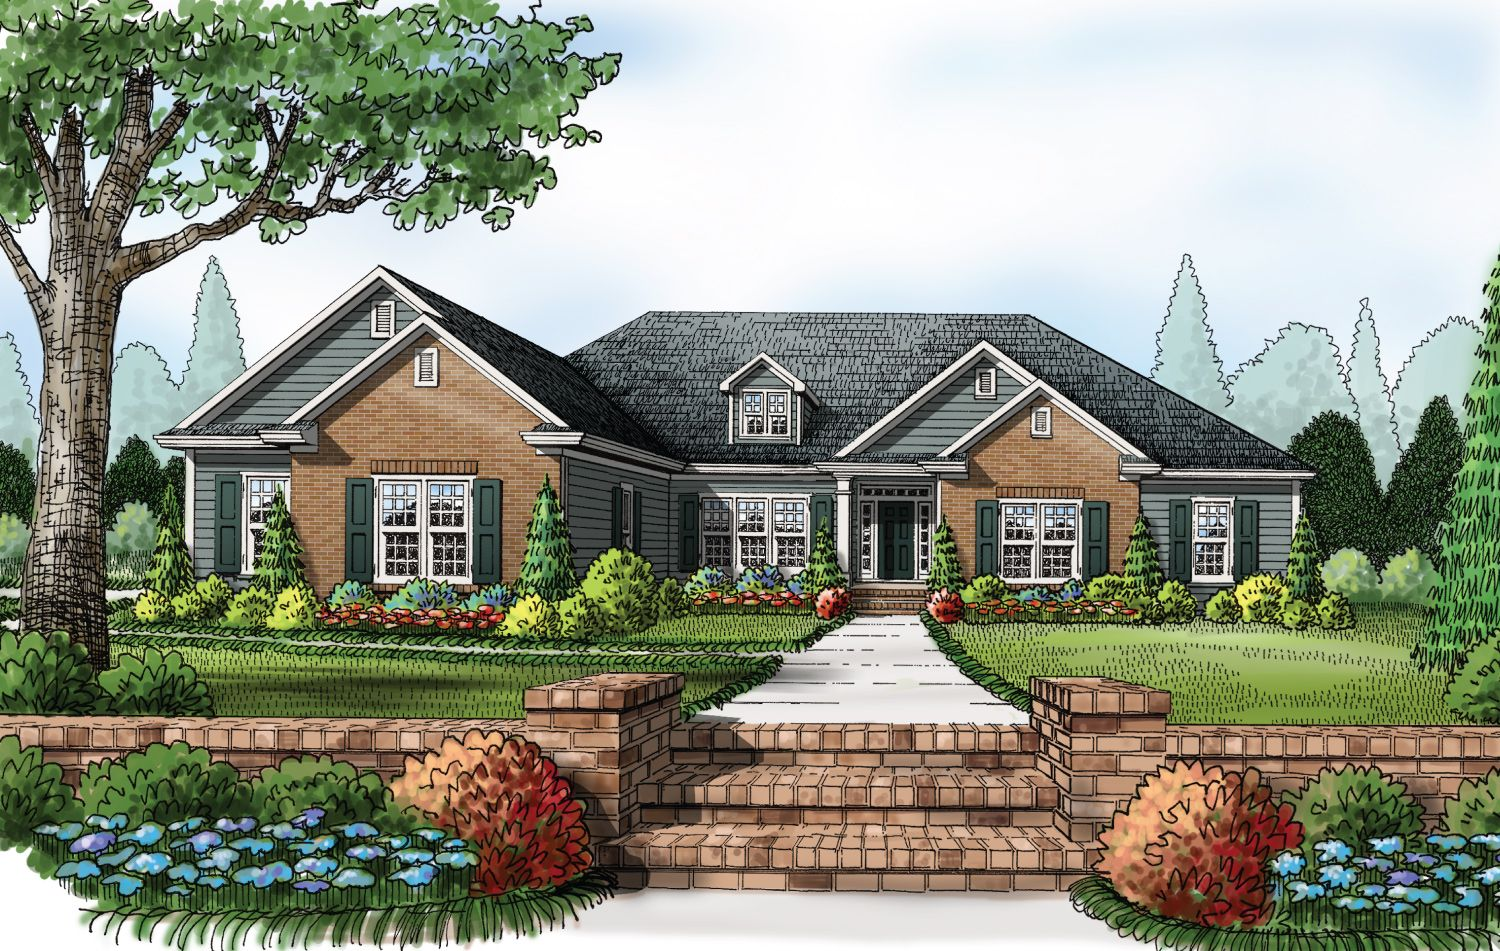 This traditional four bedroom ranch style home with